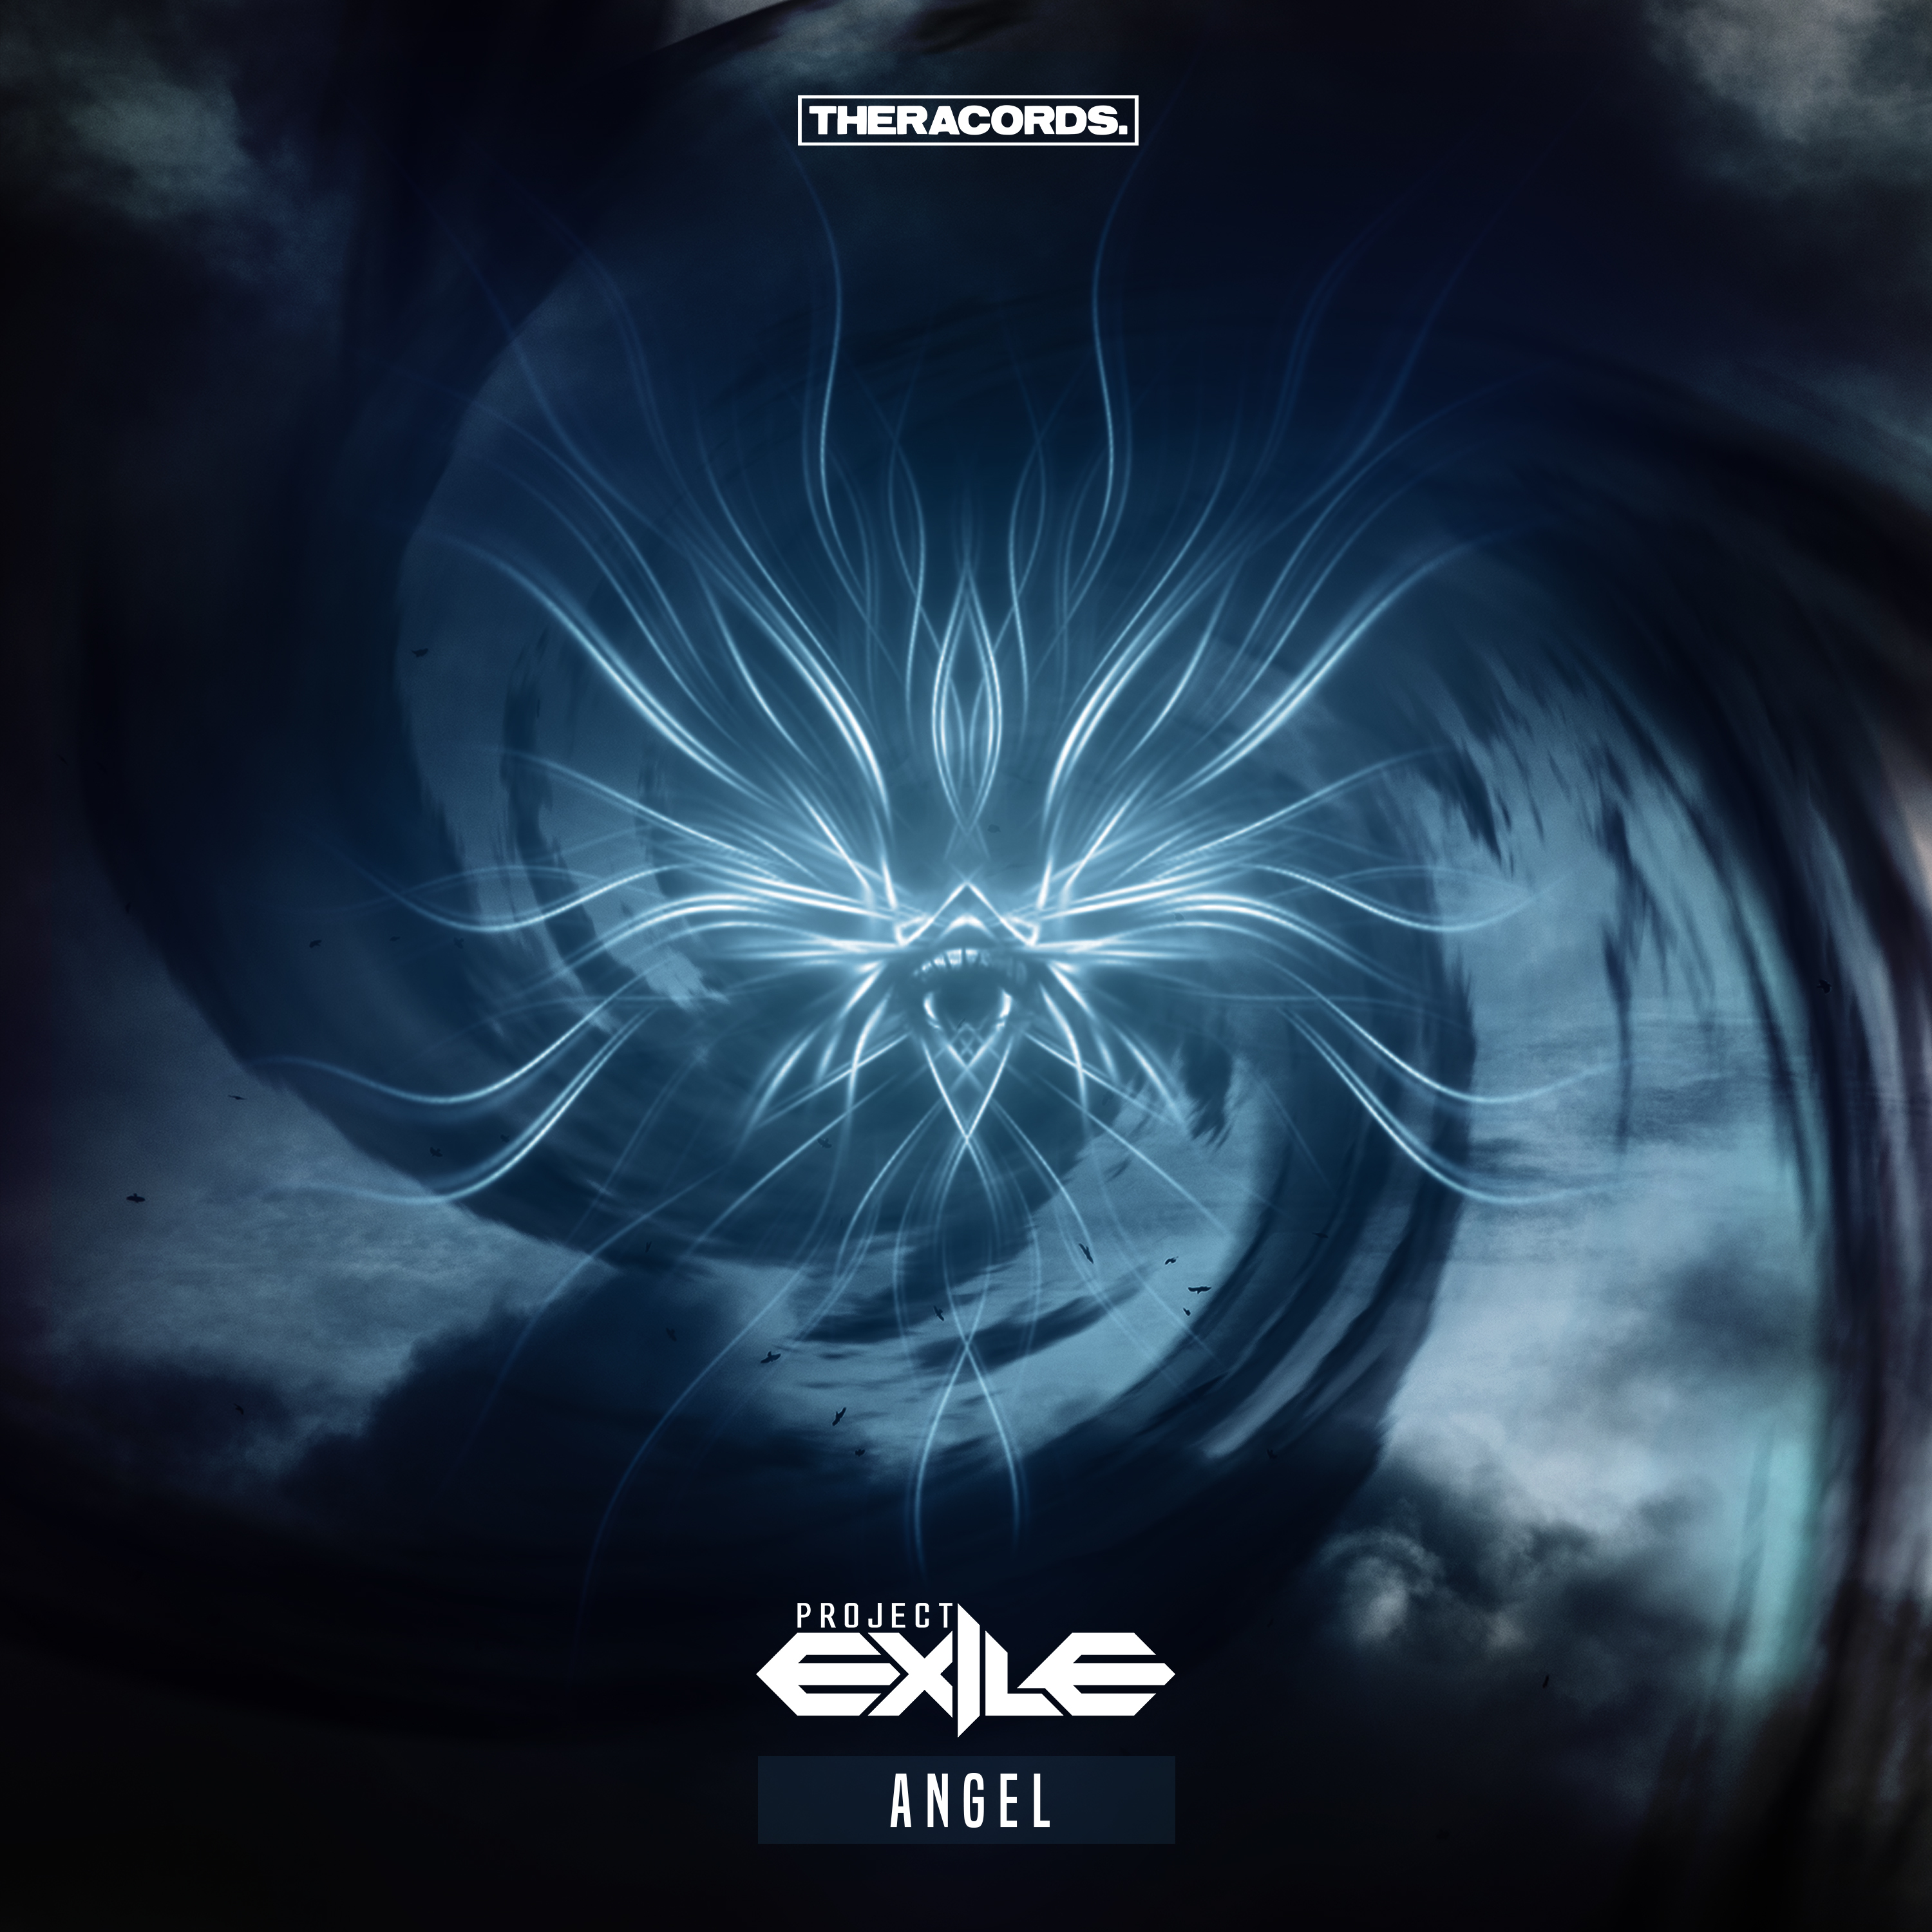 Project Exile - Angel [THERACORDS] THER209